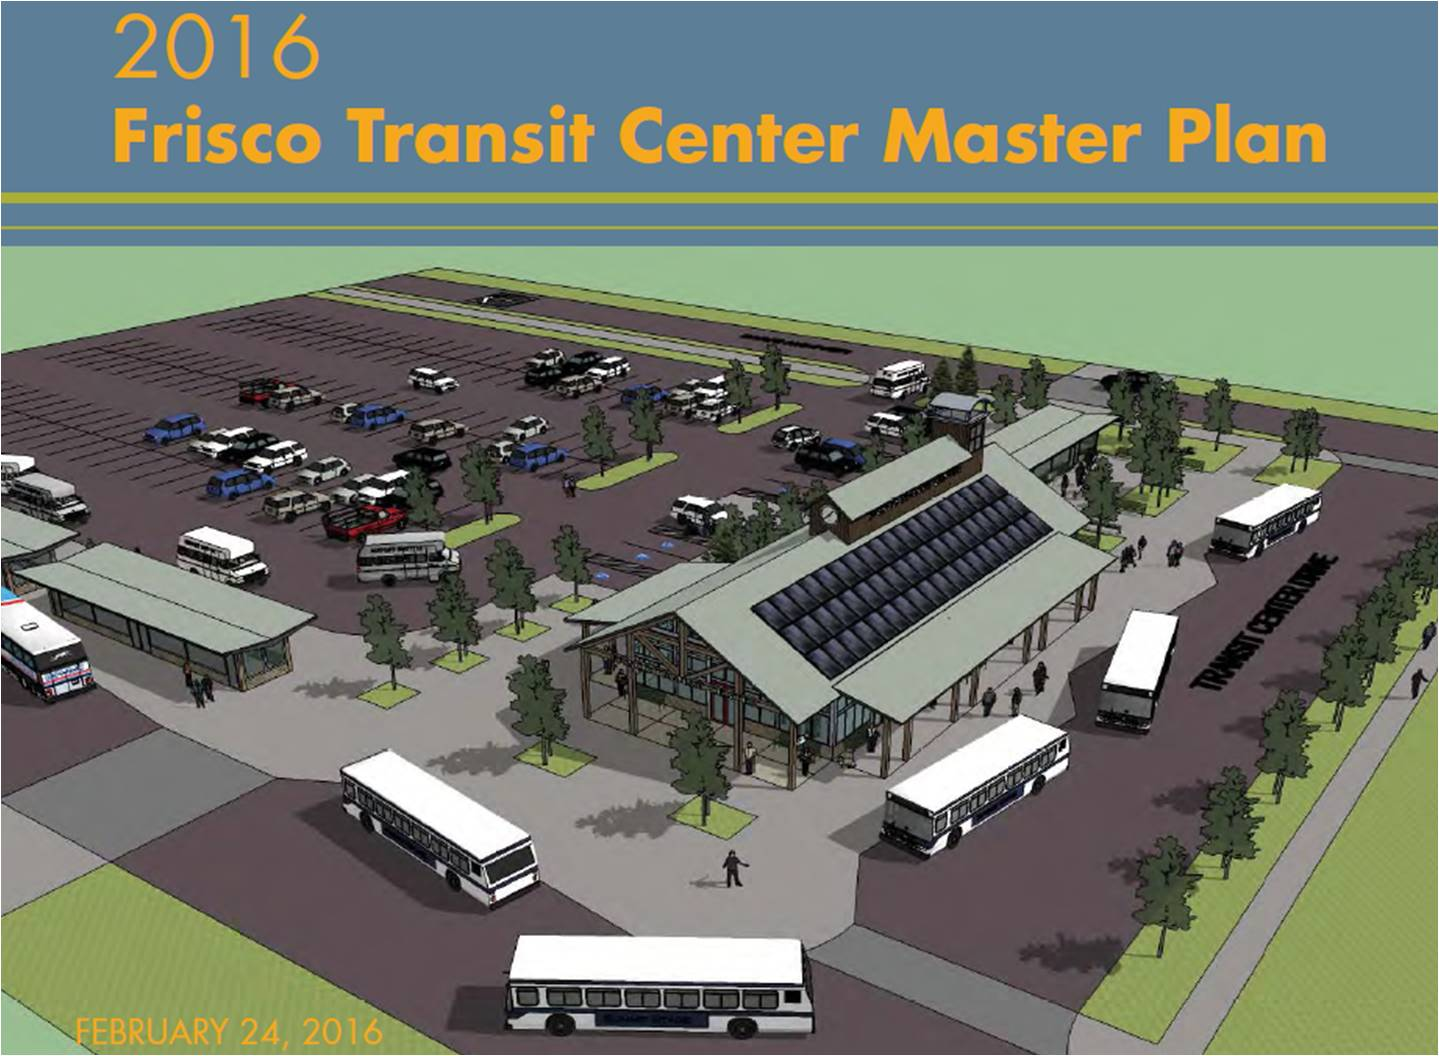 Illustration of a transit center, including a public building, pedestrian plaza and bus bays.